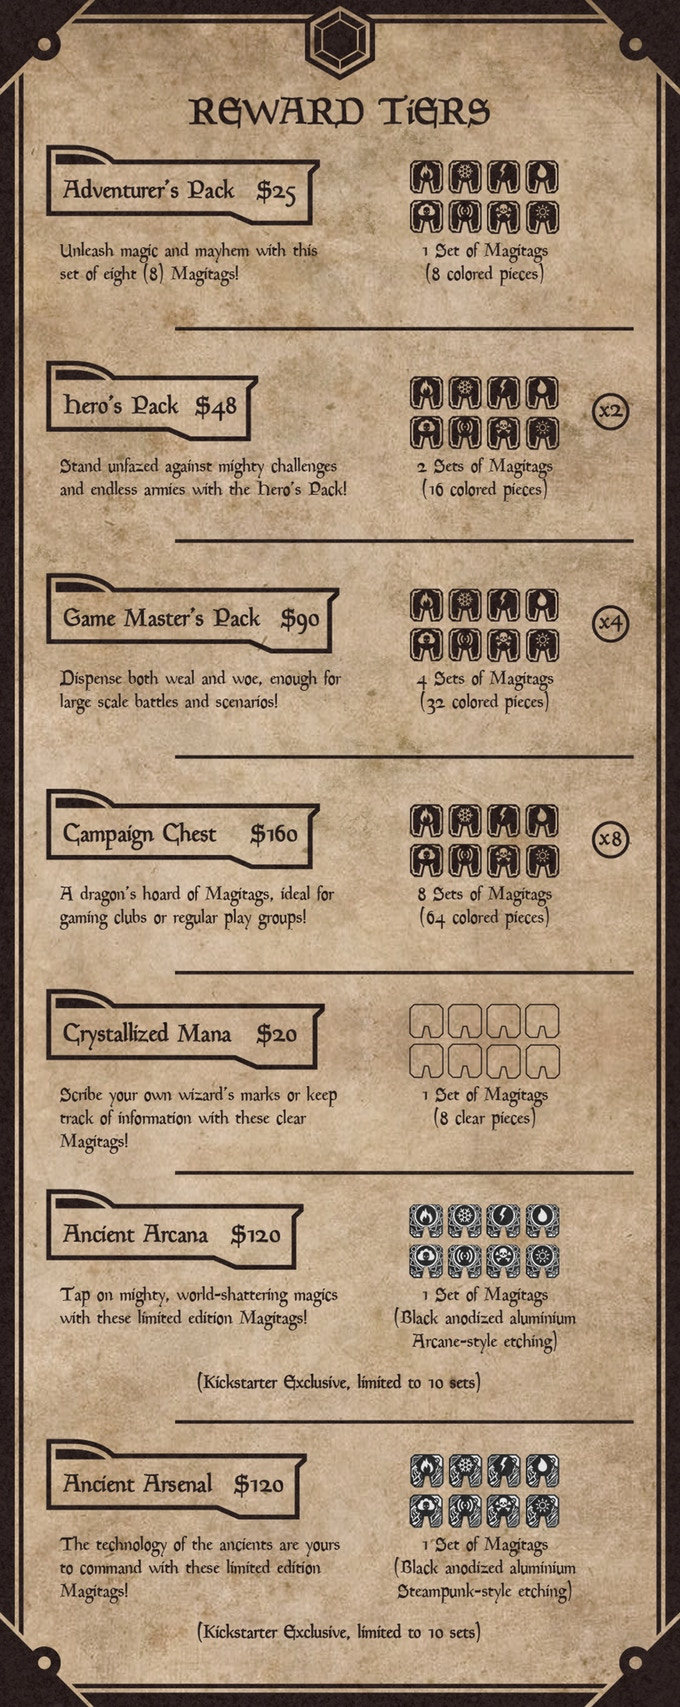 Our reward tiers are reasonably priced, and will include all Stretch Goals.